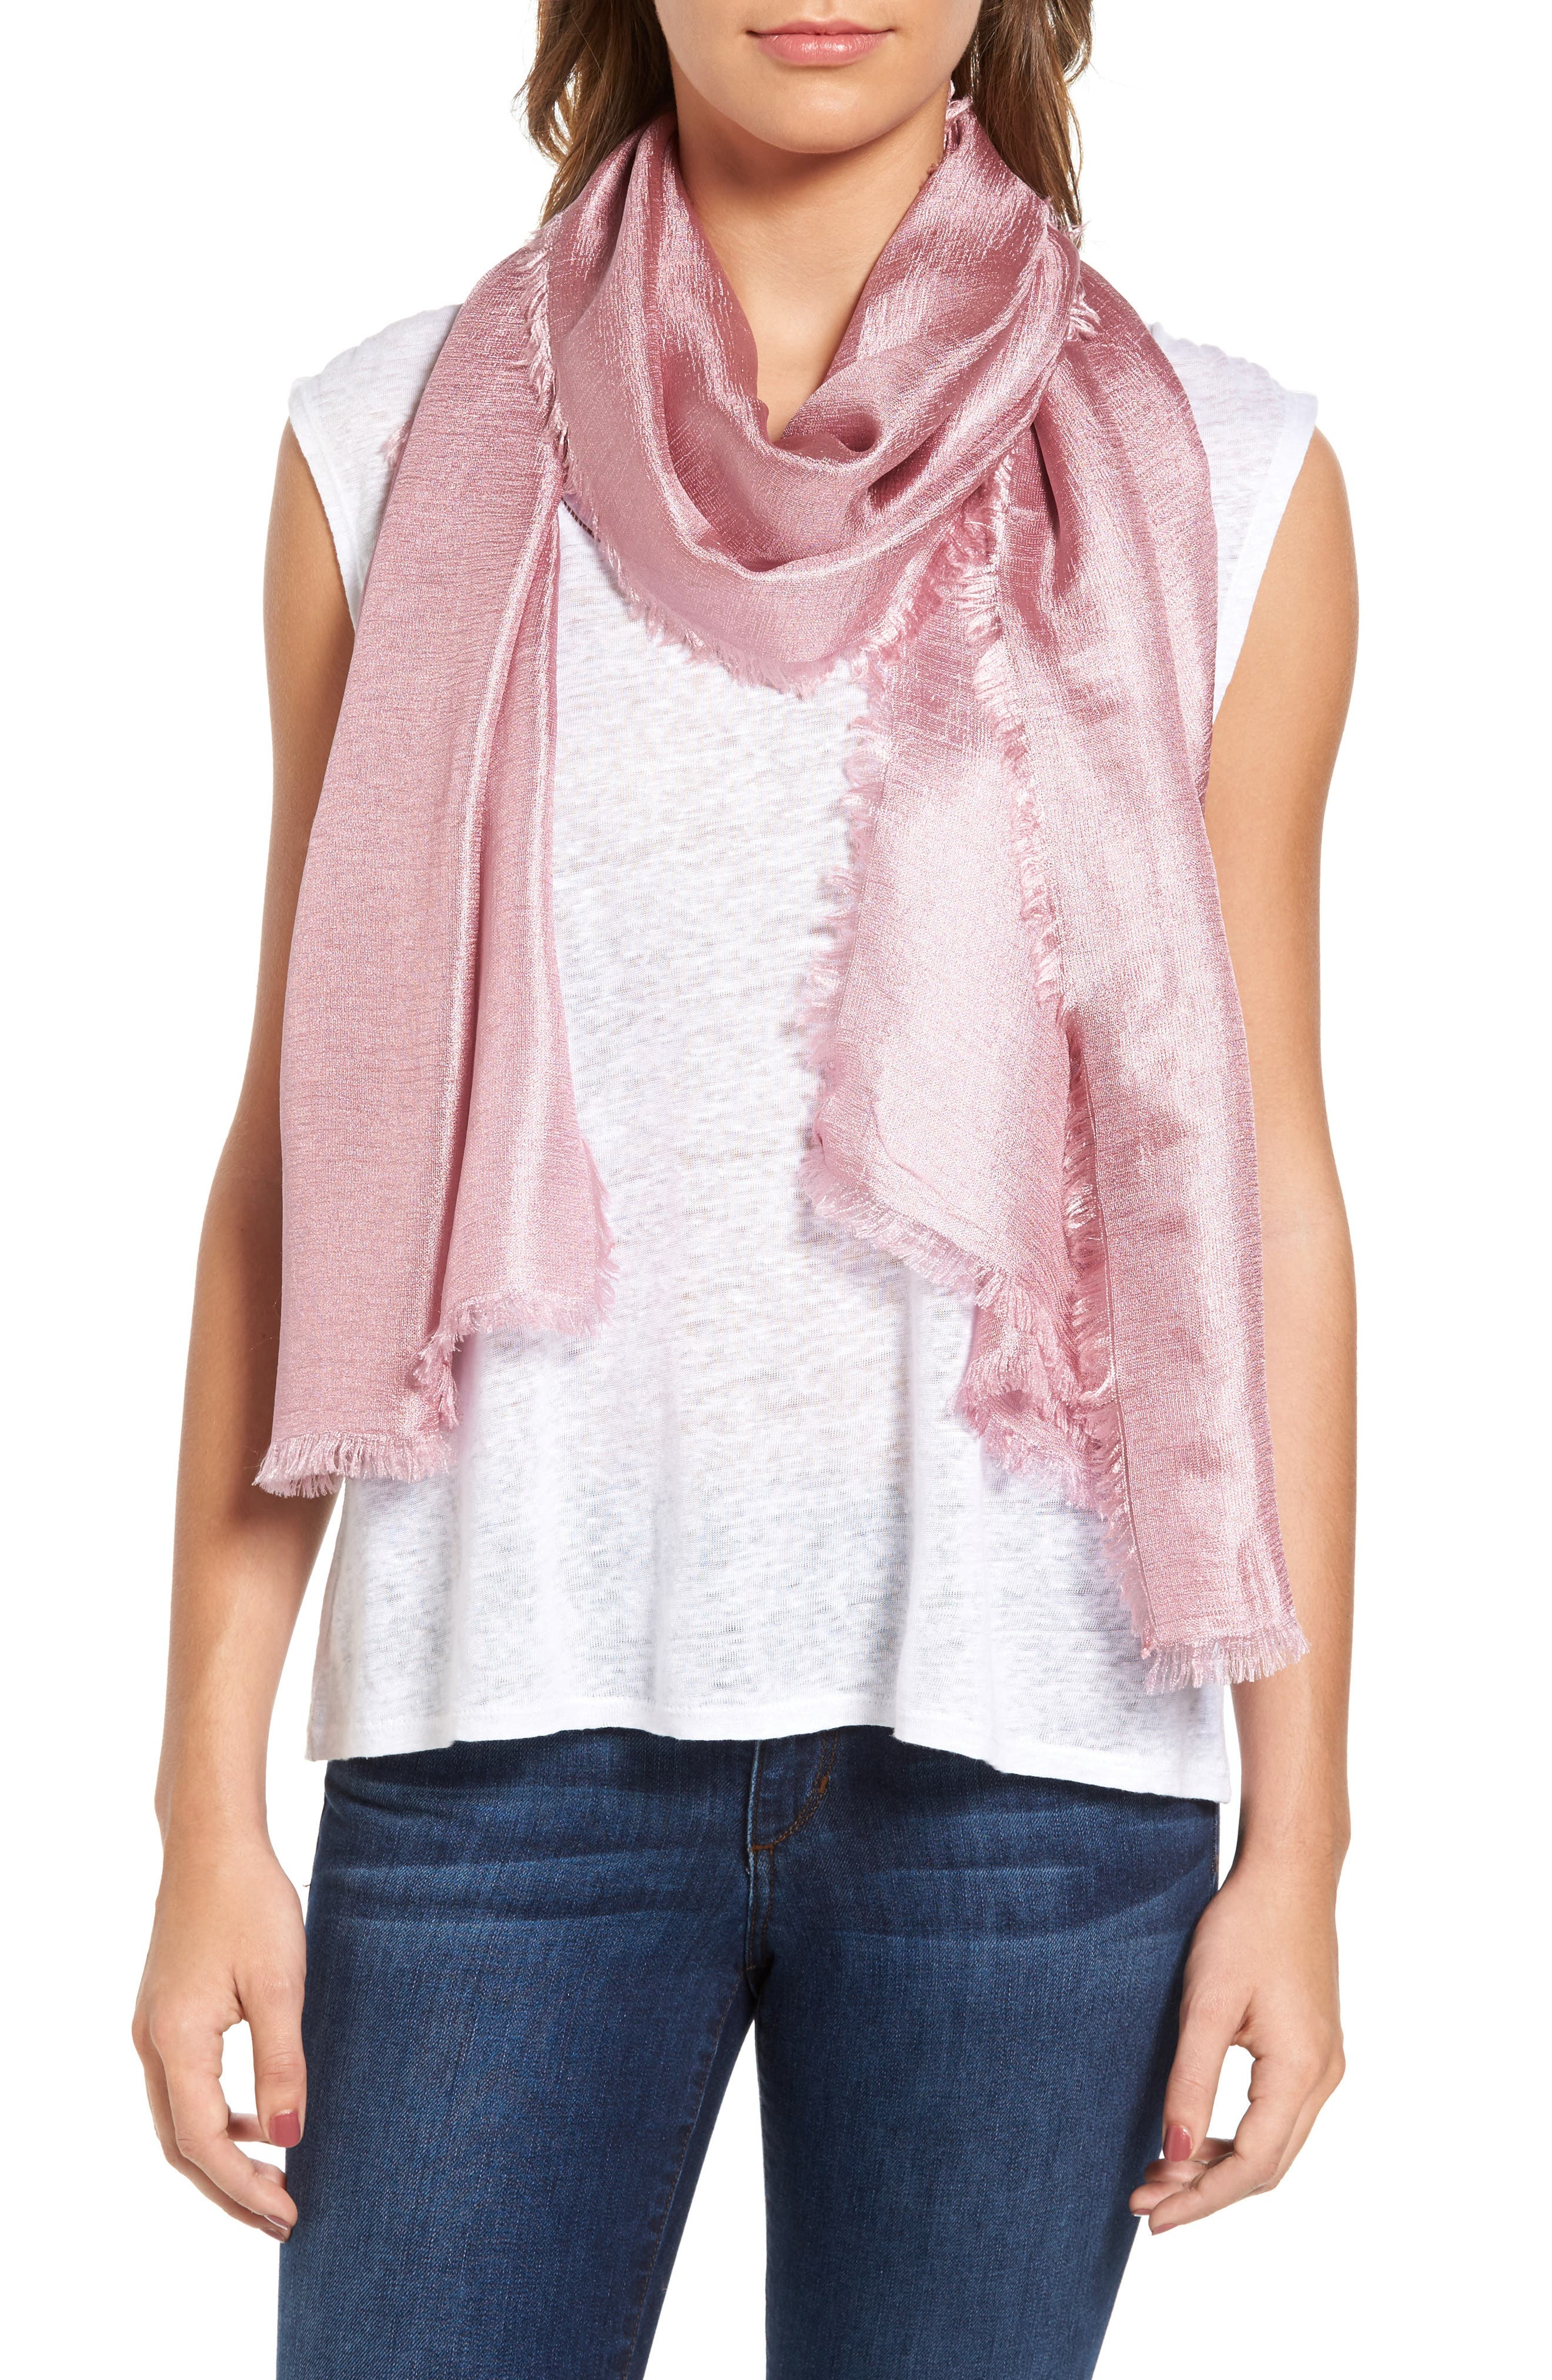 Modal Scarf - Purple Reef by St. James Whitting St James Whitting dDvFMPvM